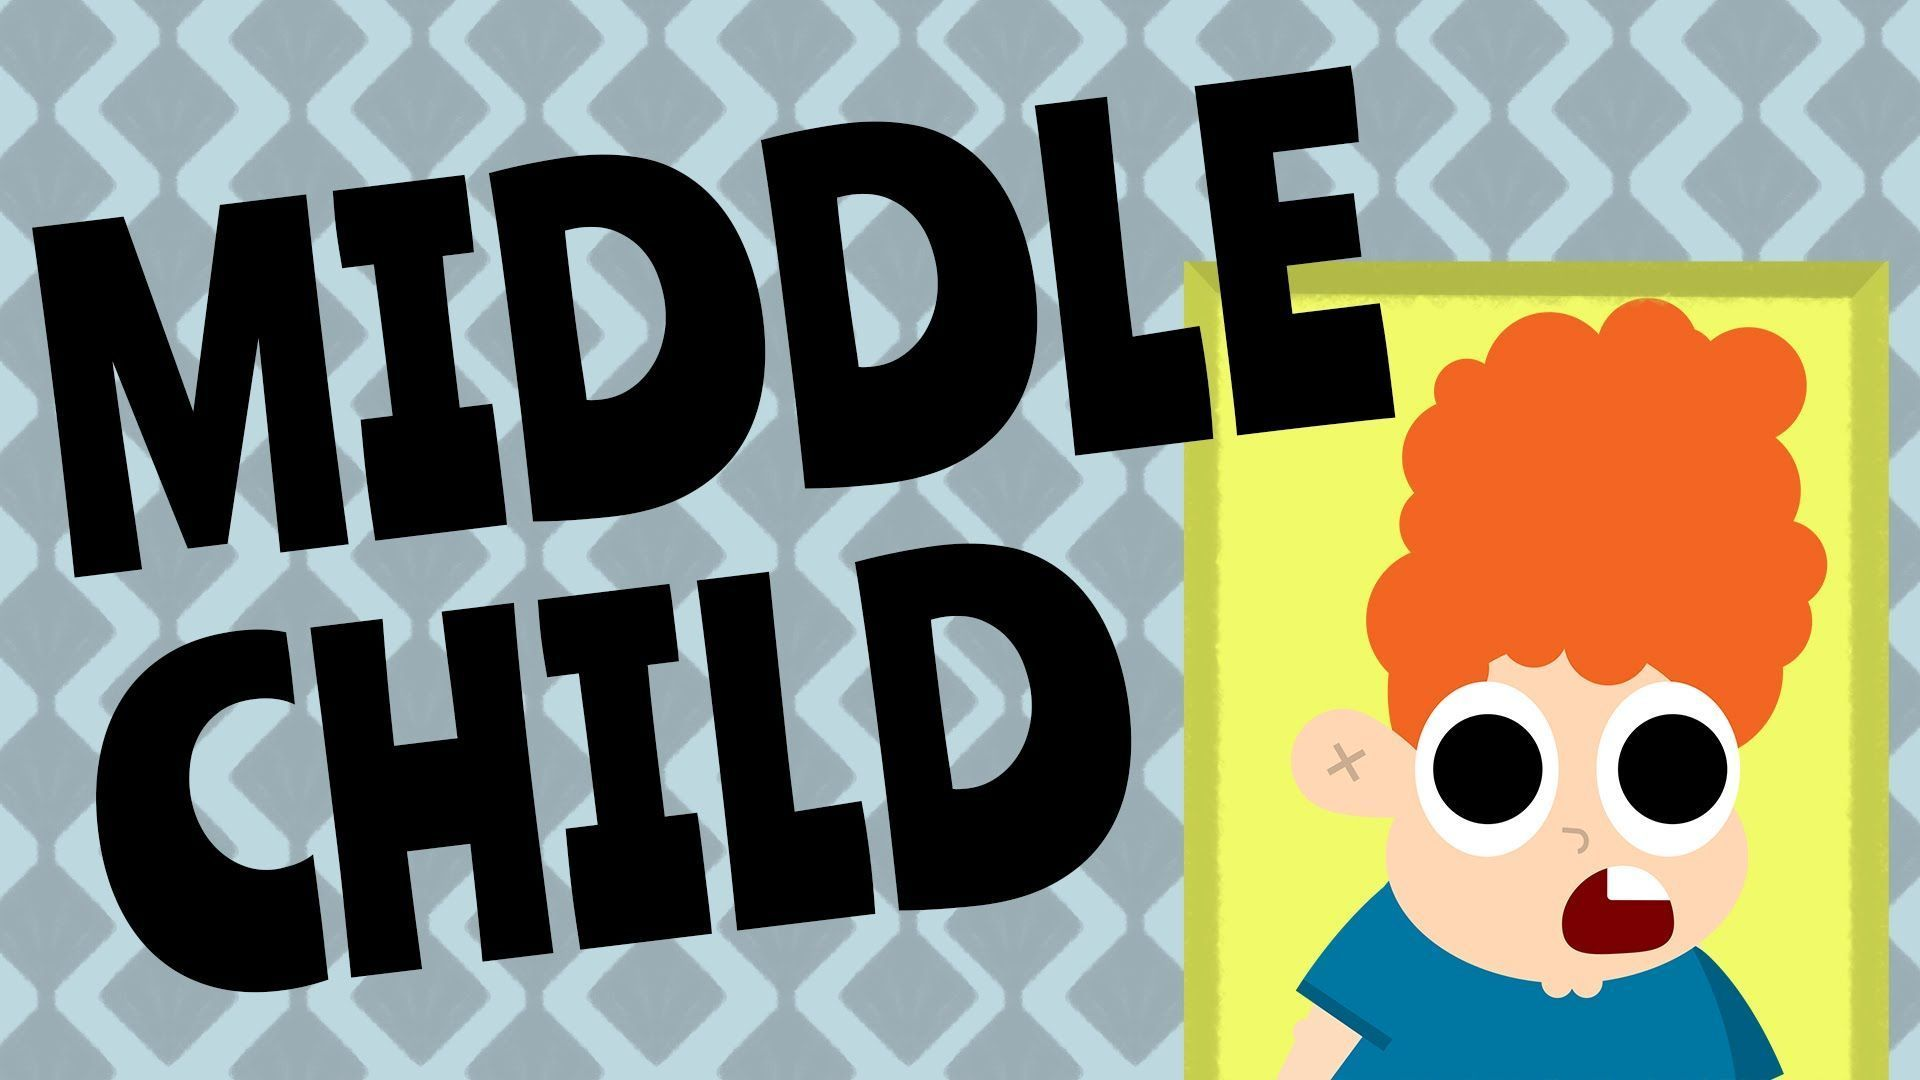 7 Middle Child Problems #middlechildhumor 7 Middle Child Problems #middlechildhumor 7 Middle Child Problems #middlechildhumor 7 Middle Child Problems #middlechildhumor